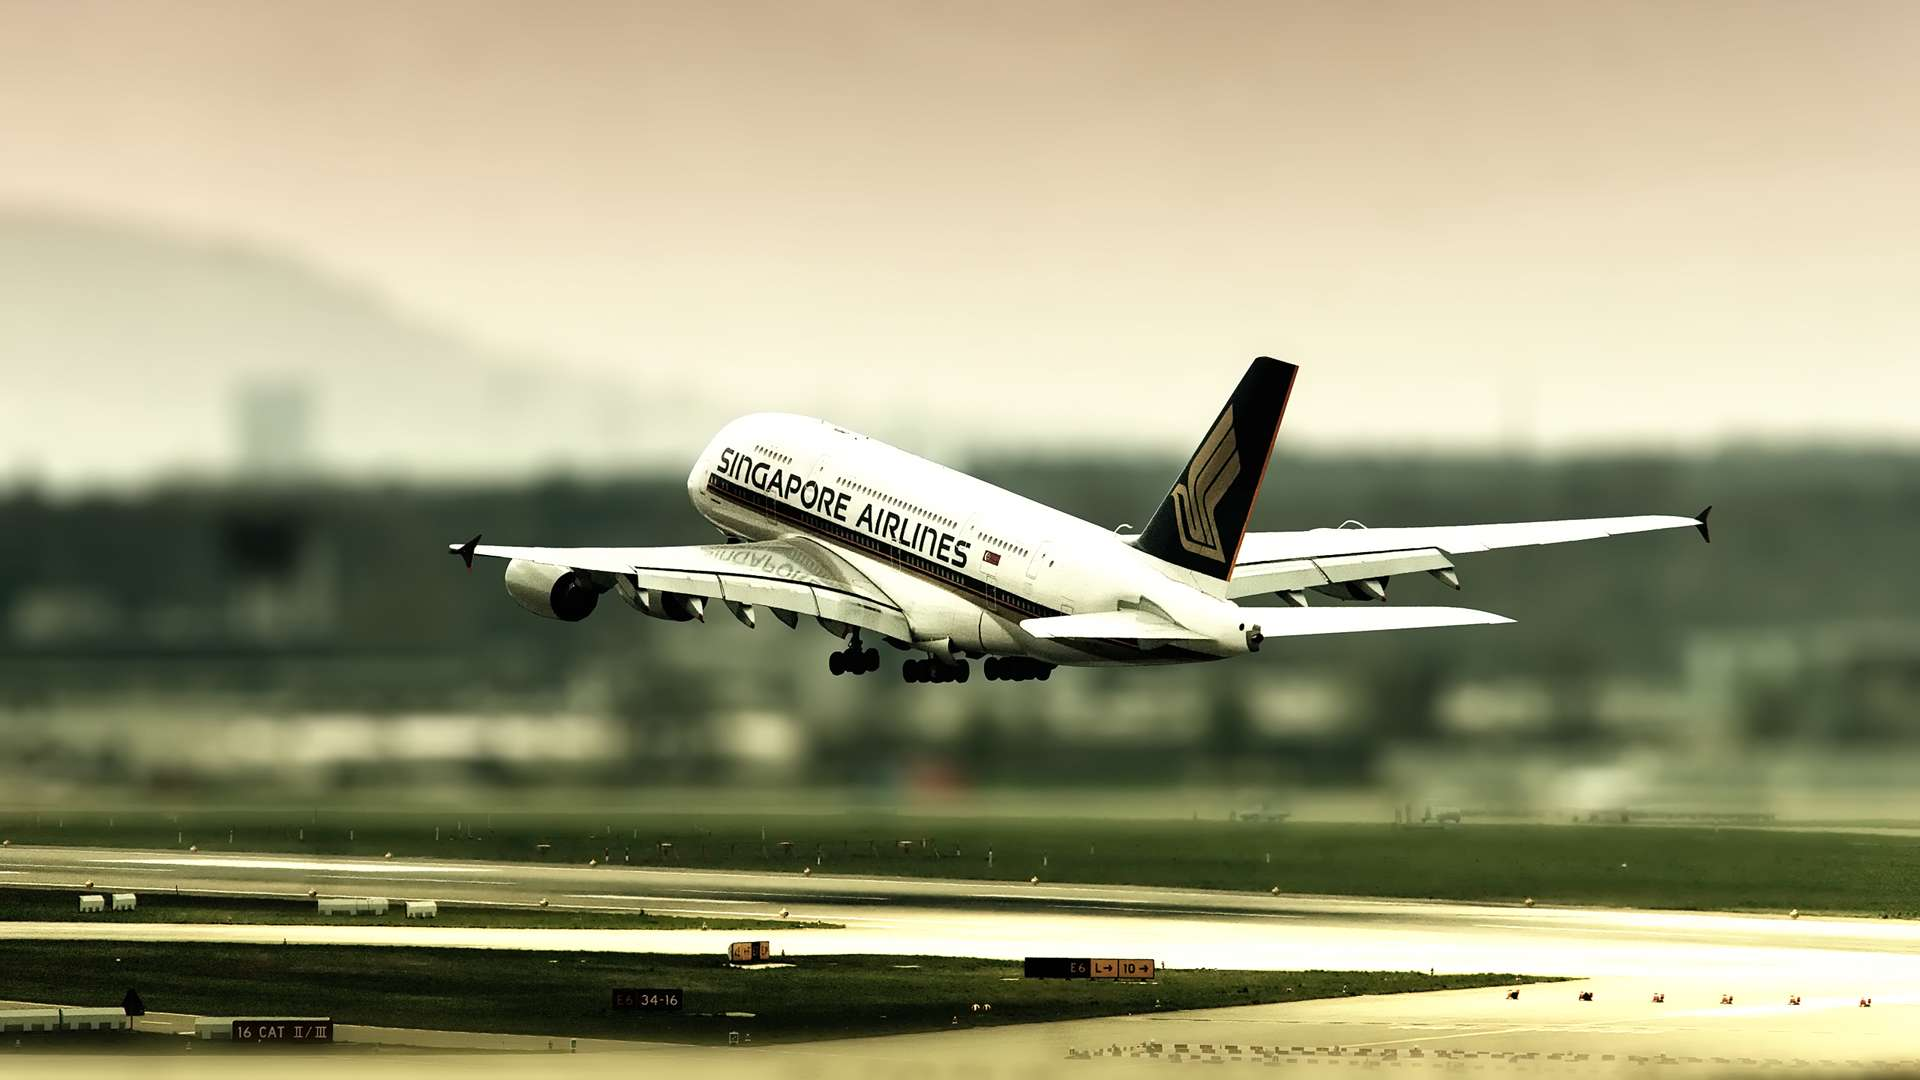 Airbus A380 Singapore Airlines Landing HD Wallpaper 1920x1080